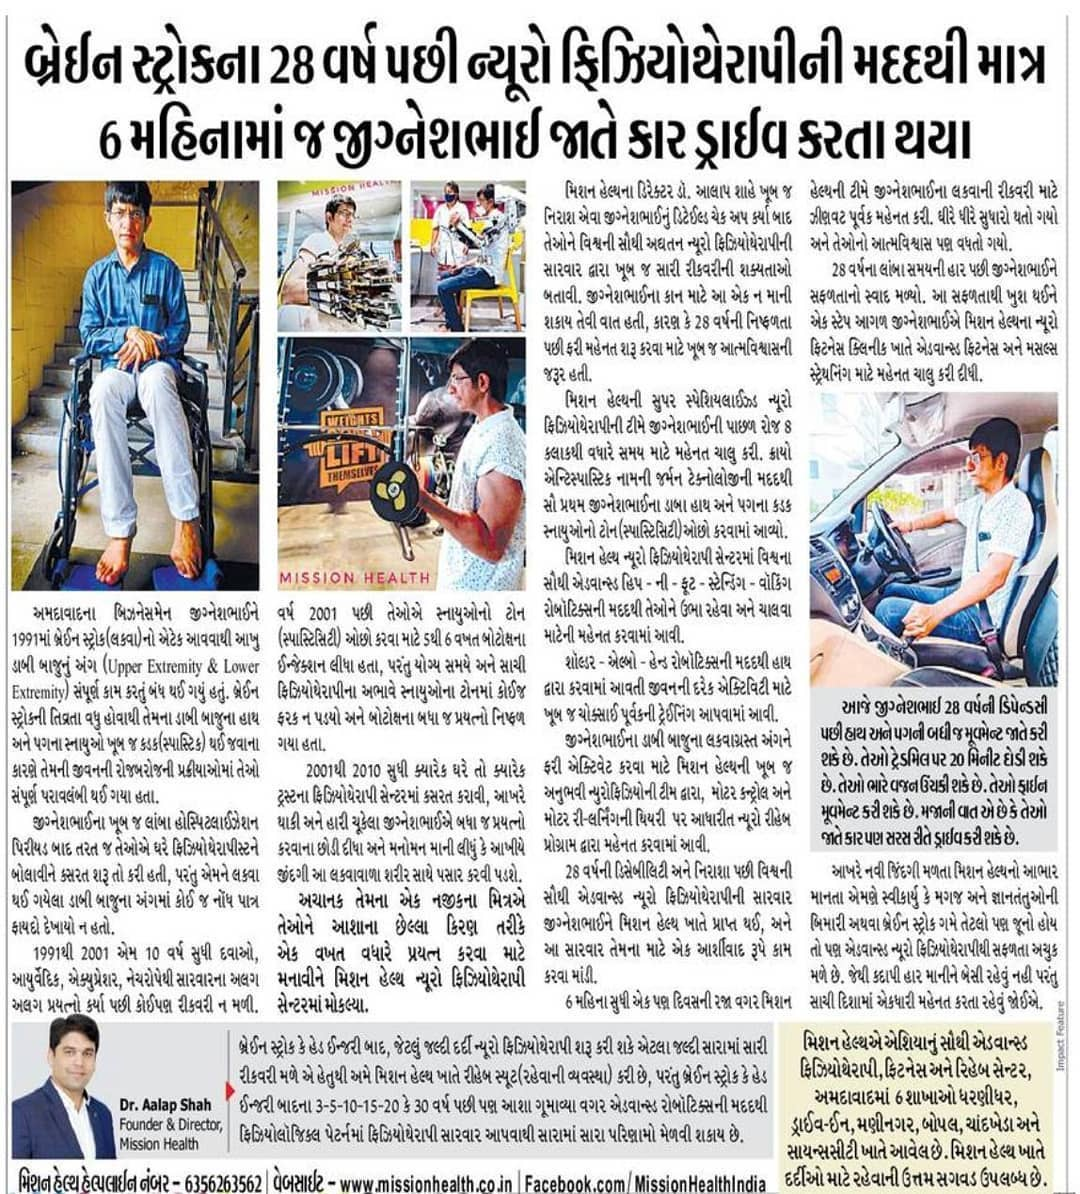 28 years after Brain Stroke, Jignesh bhai did various treatments but could not find significant improvement.  After Long 28 Years, He came to Mission Health as a last resort.  6 Months of Neuro Physiotherapy with Robotics @ Mission Health changed his Life...He can self Drive now... Yes, you heard it right